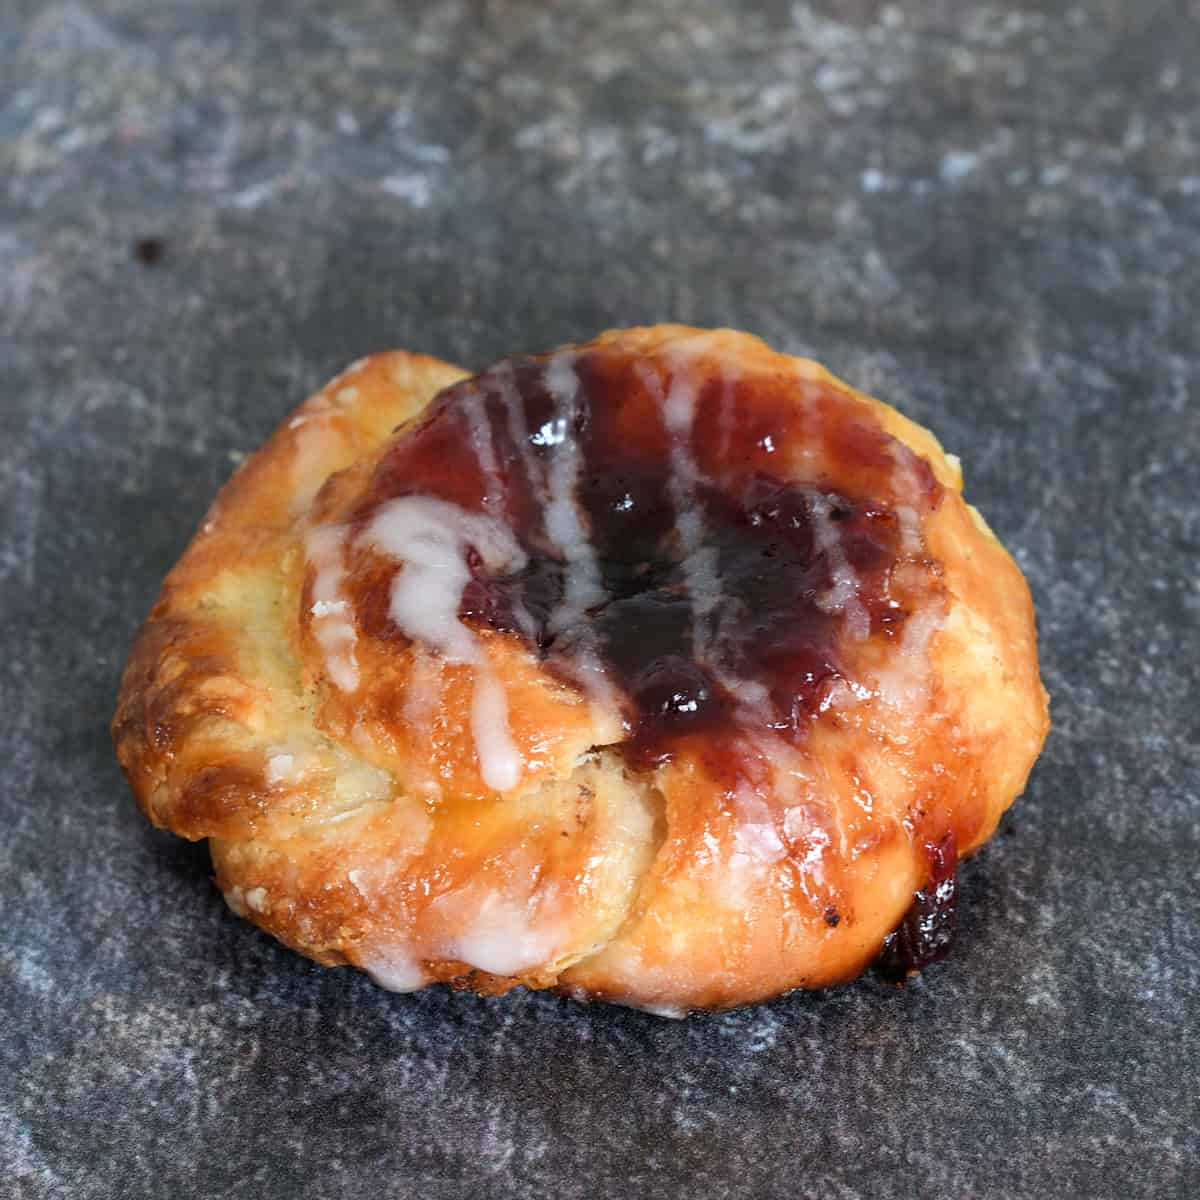 a sourdough danish pastry filled with jam is on a gray background